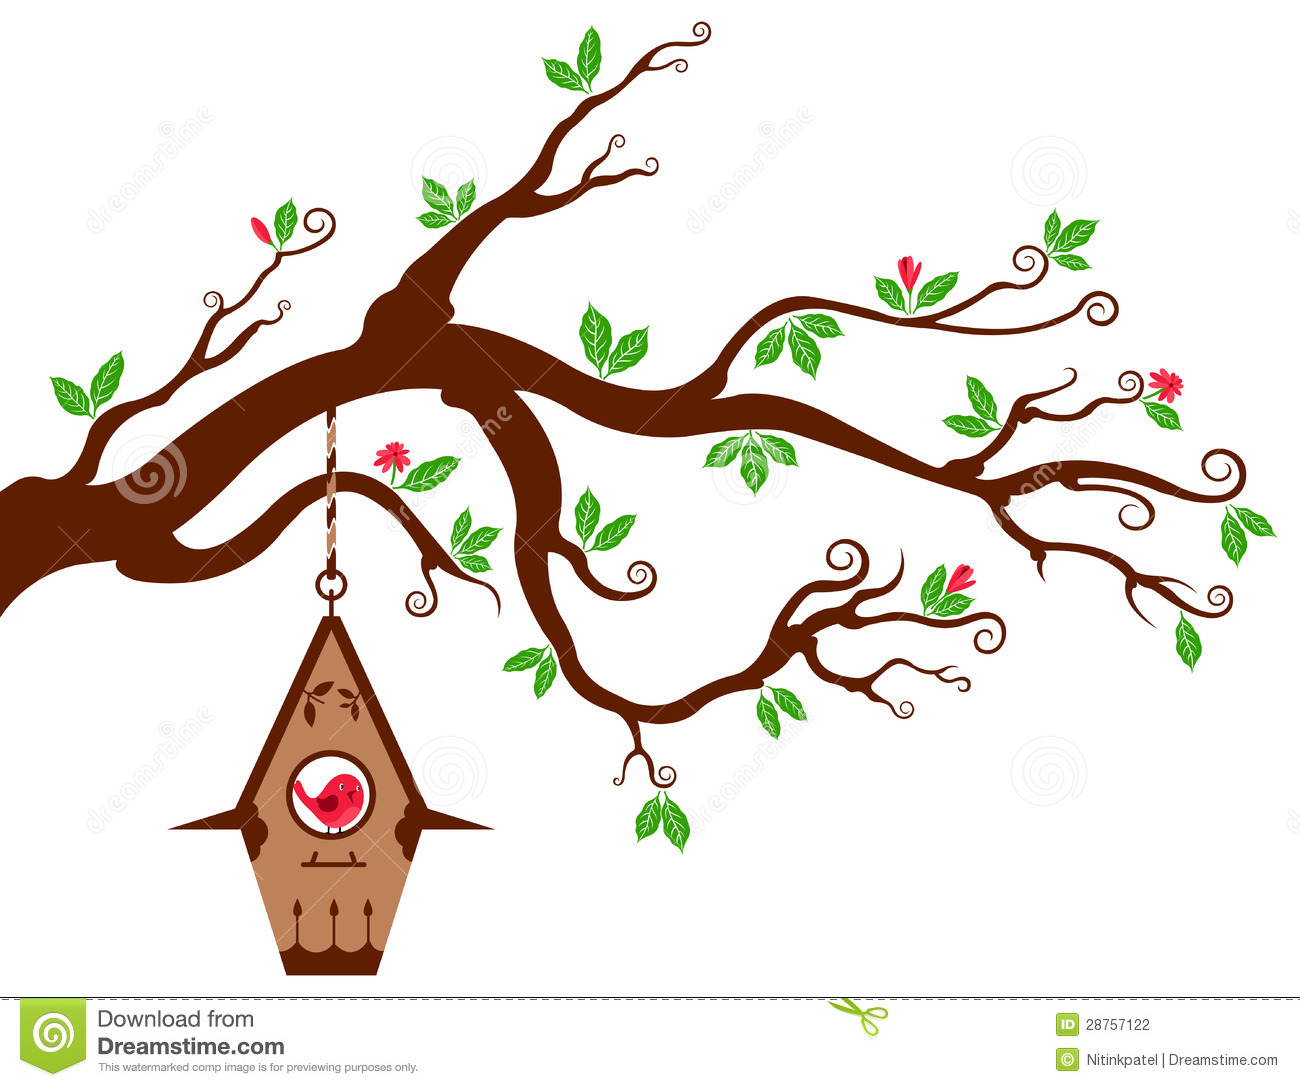 Branches panda free images. Branch clipart clip art tree